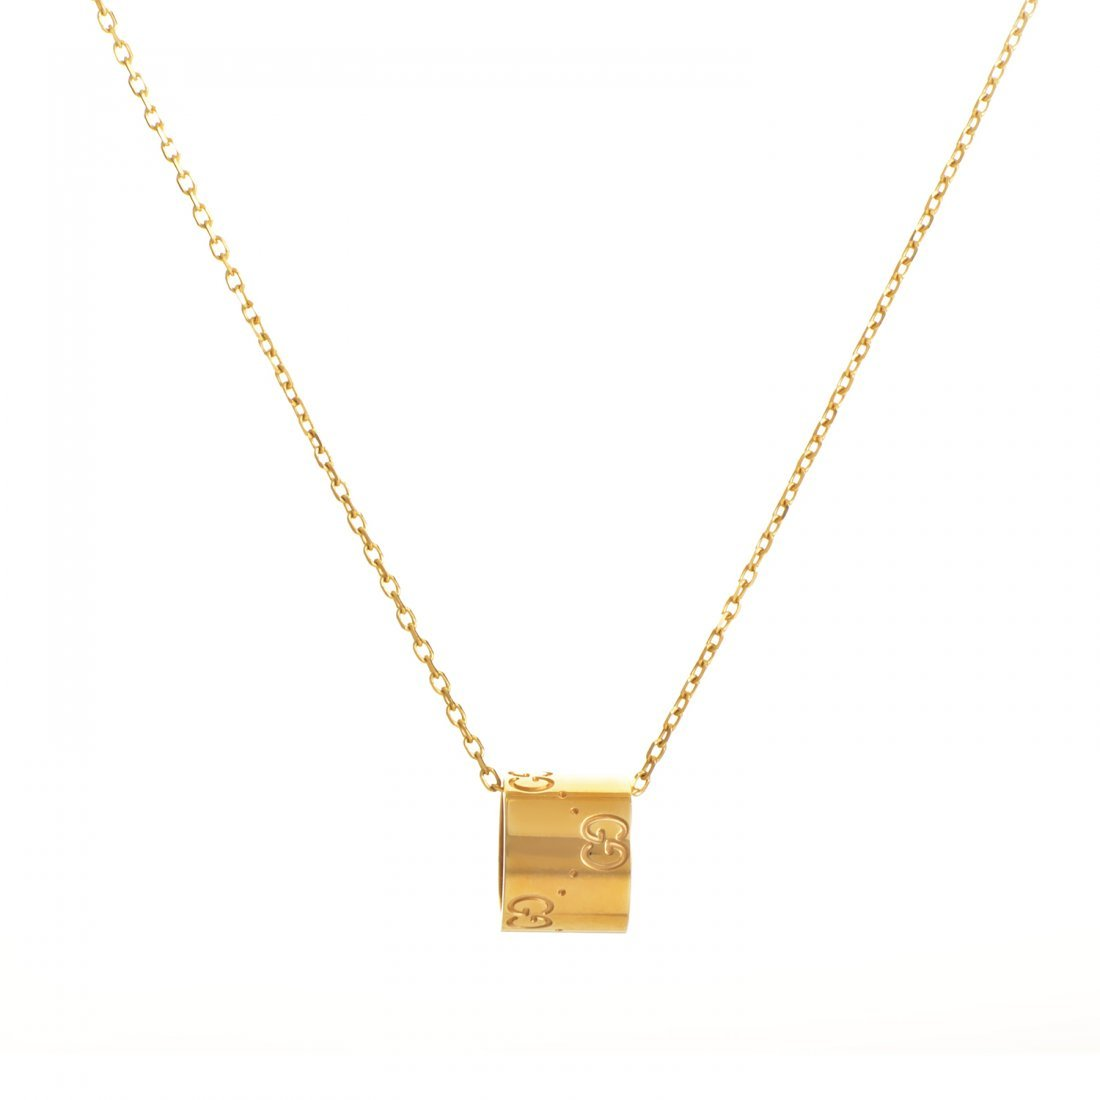 Gucci Icon 18K Yellow Gold Pendant Necklace  Dangling